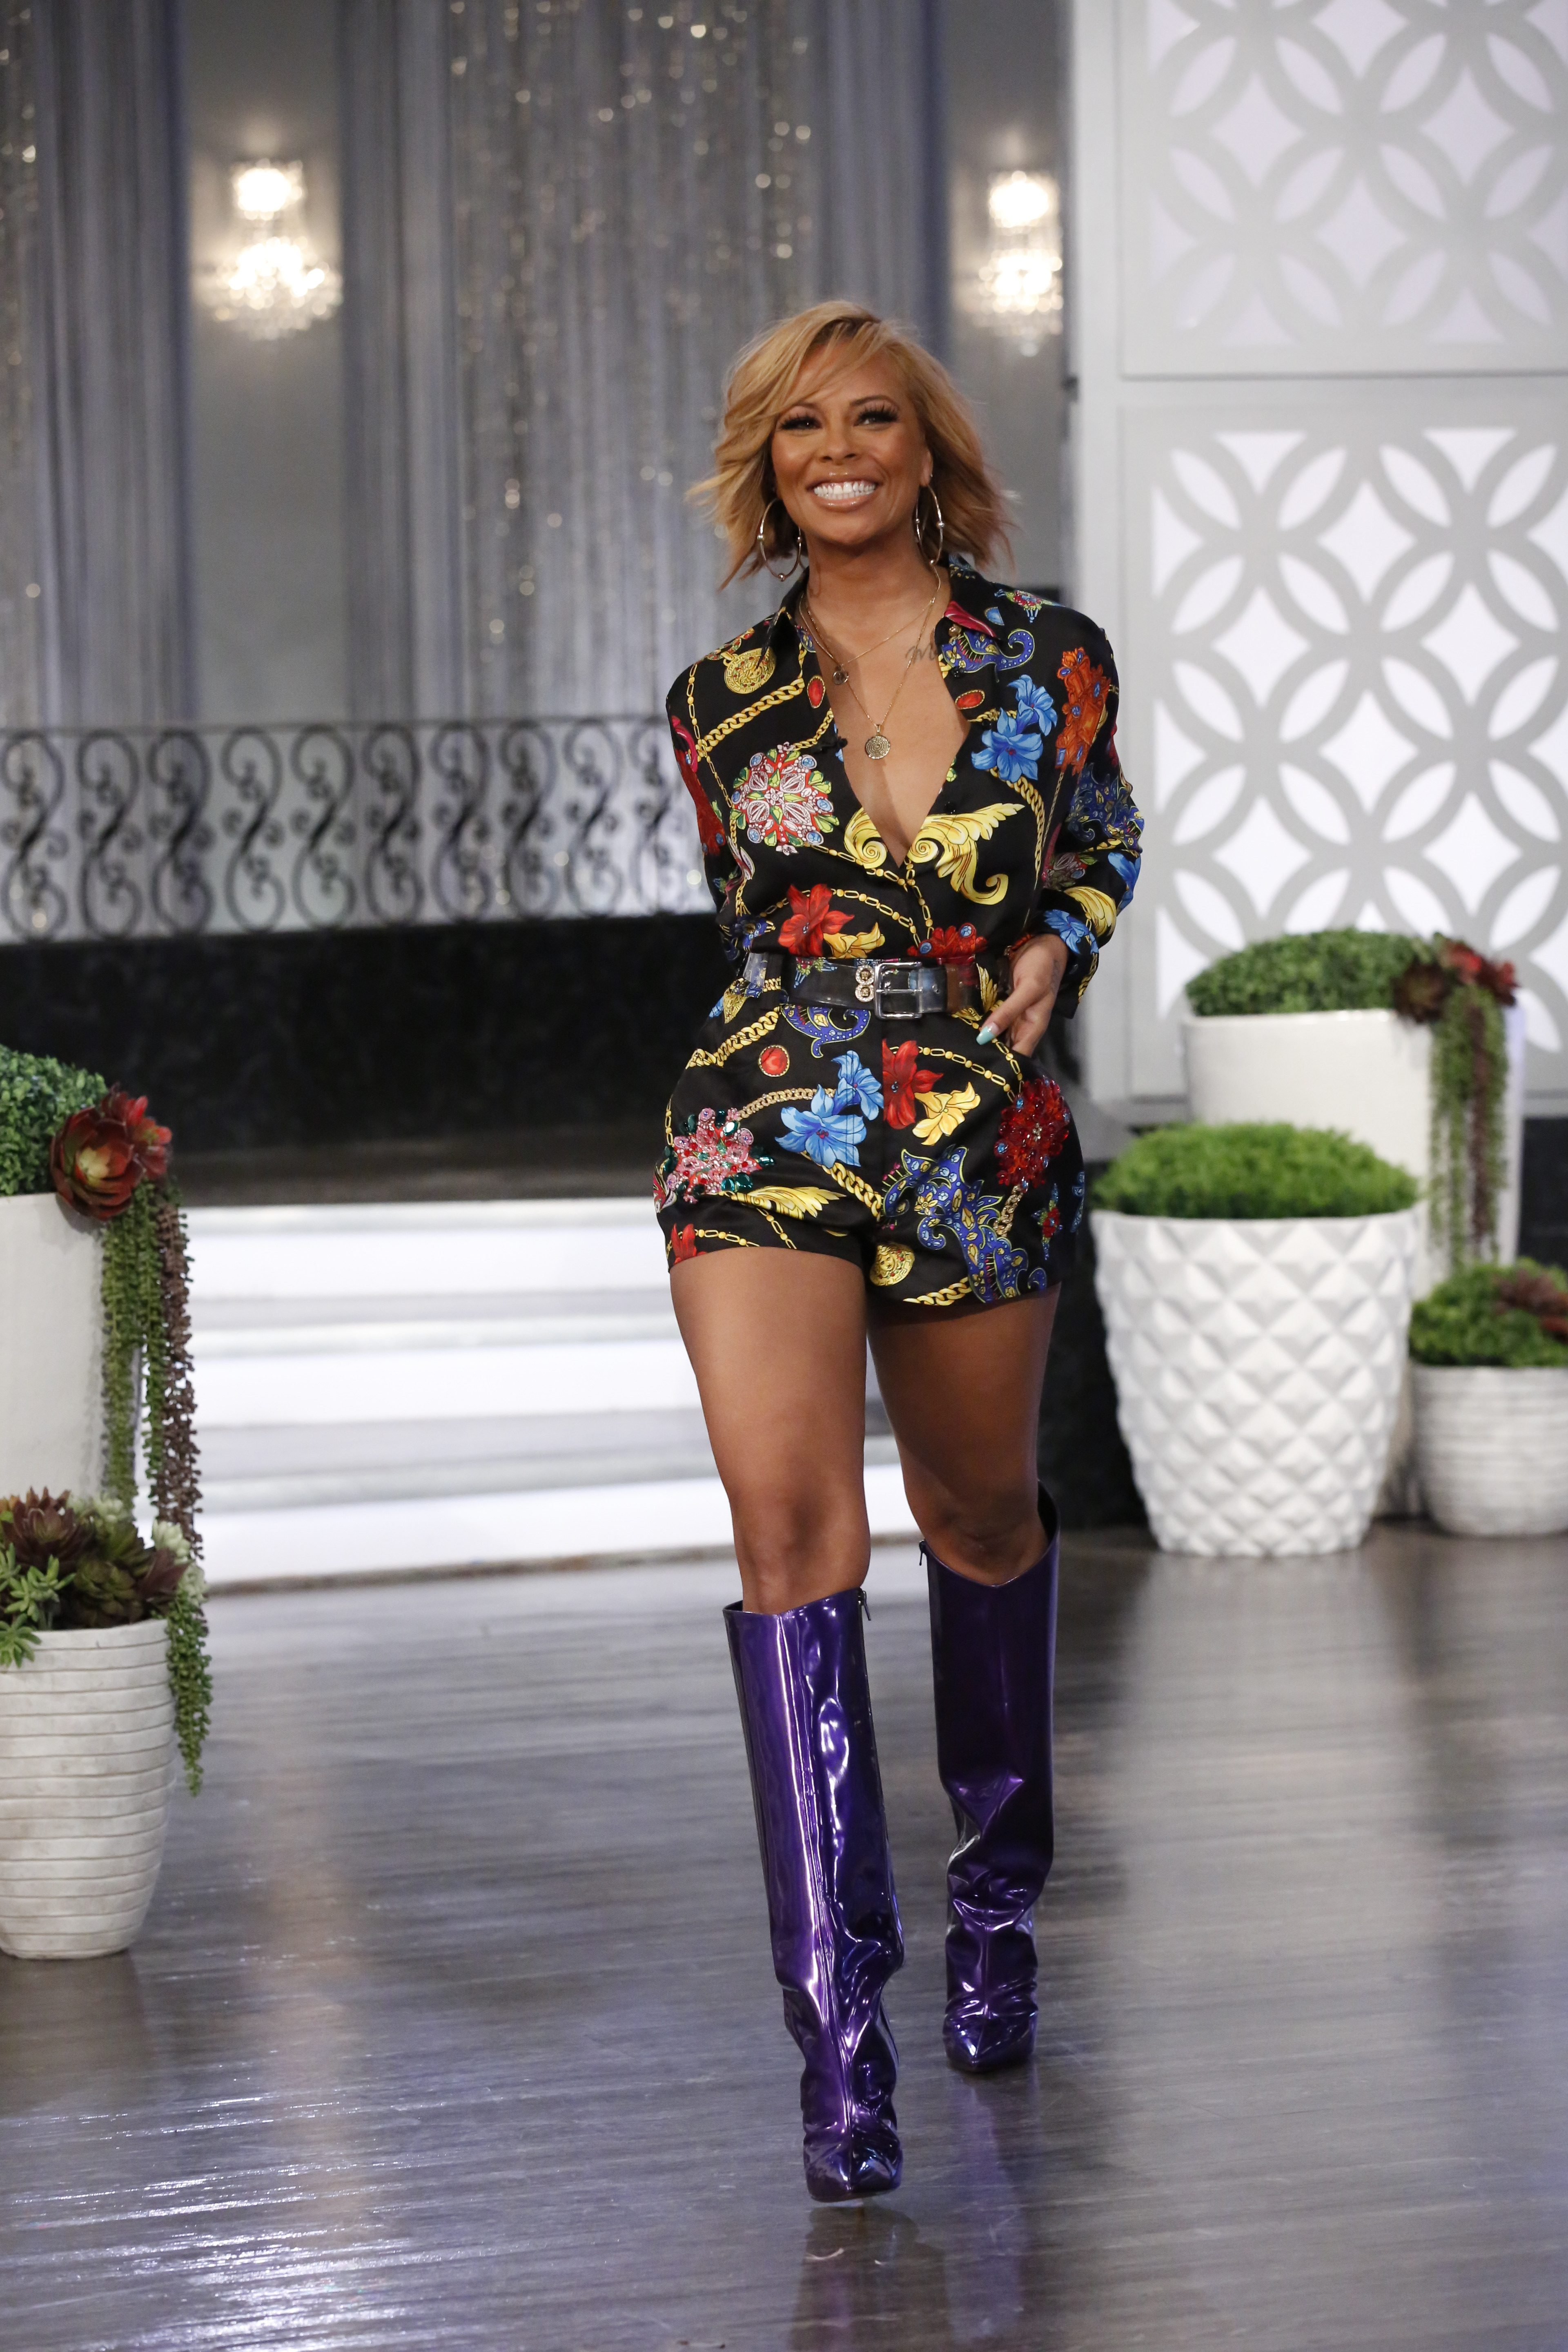 In Case You Missed It: Eva Marcille On The Real